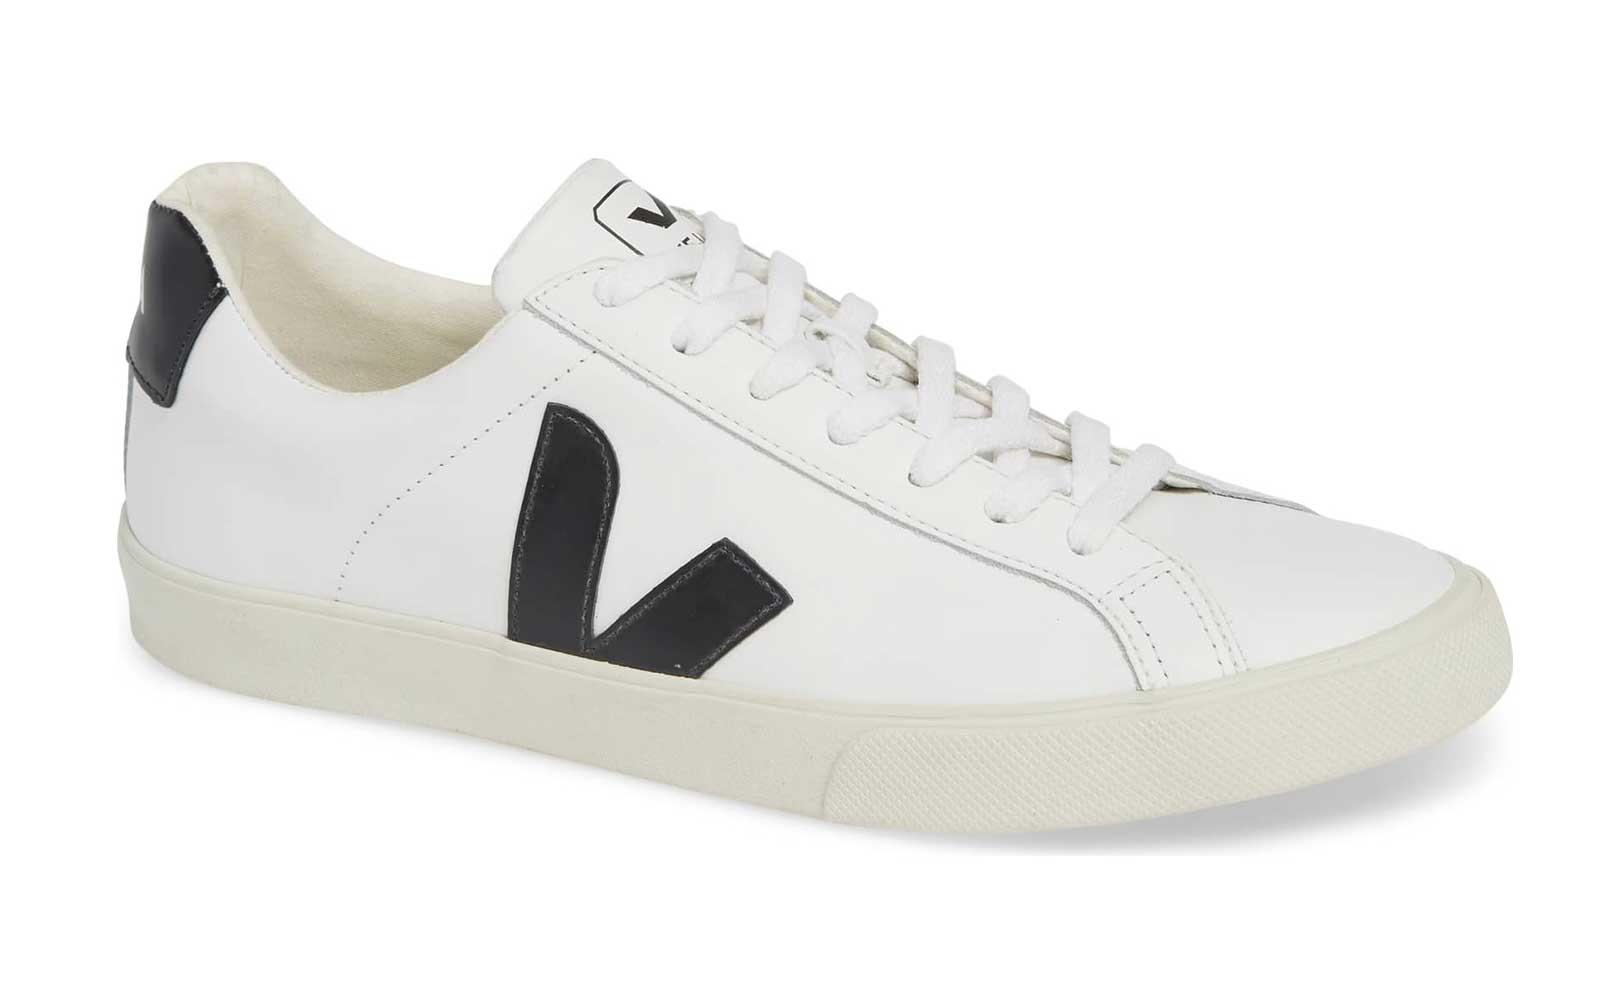 Veja V-12 sneakers worn by Meghan Markle